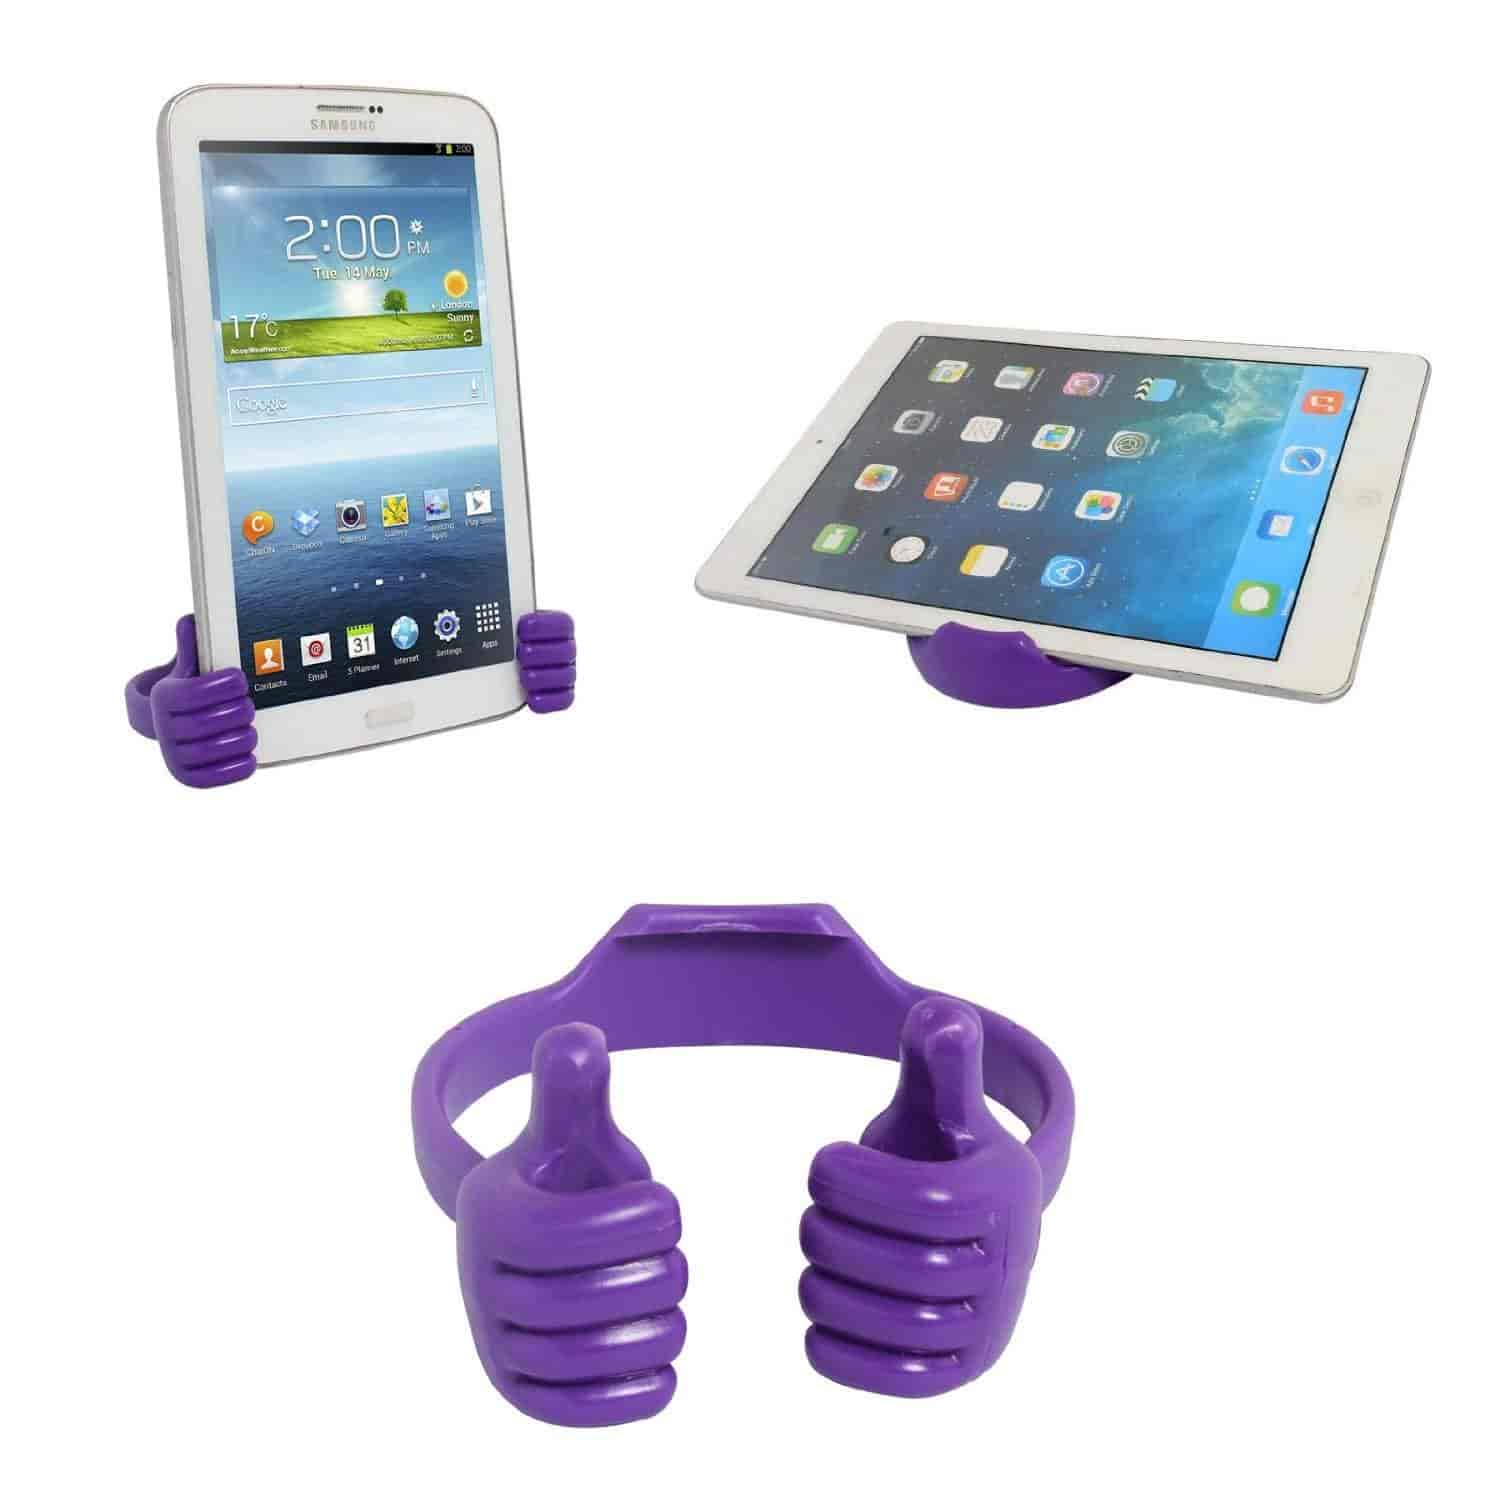 Buy DMG Portable Foldable Stand Holder Cover Case for Asus